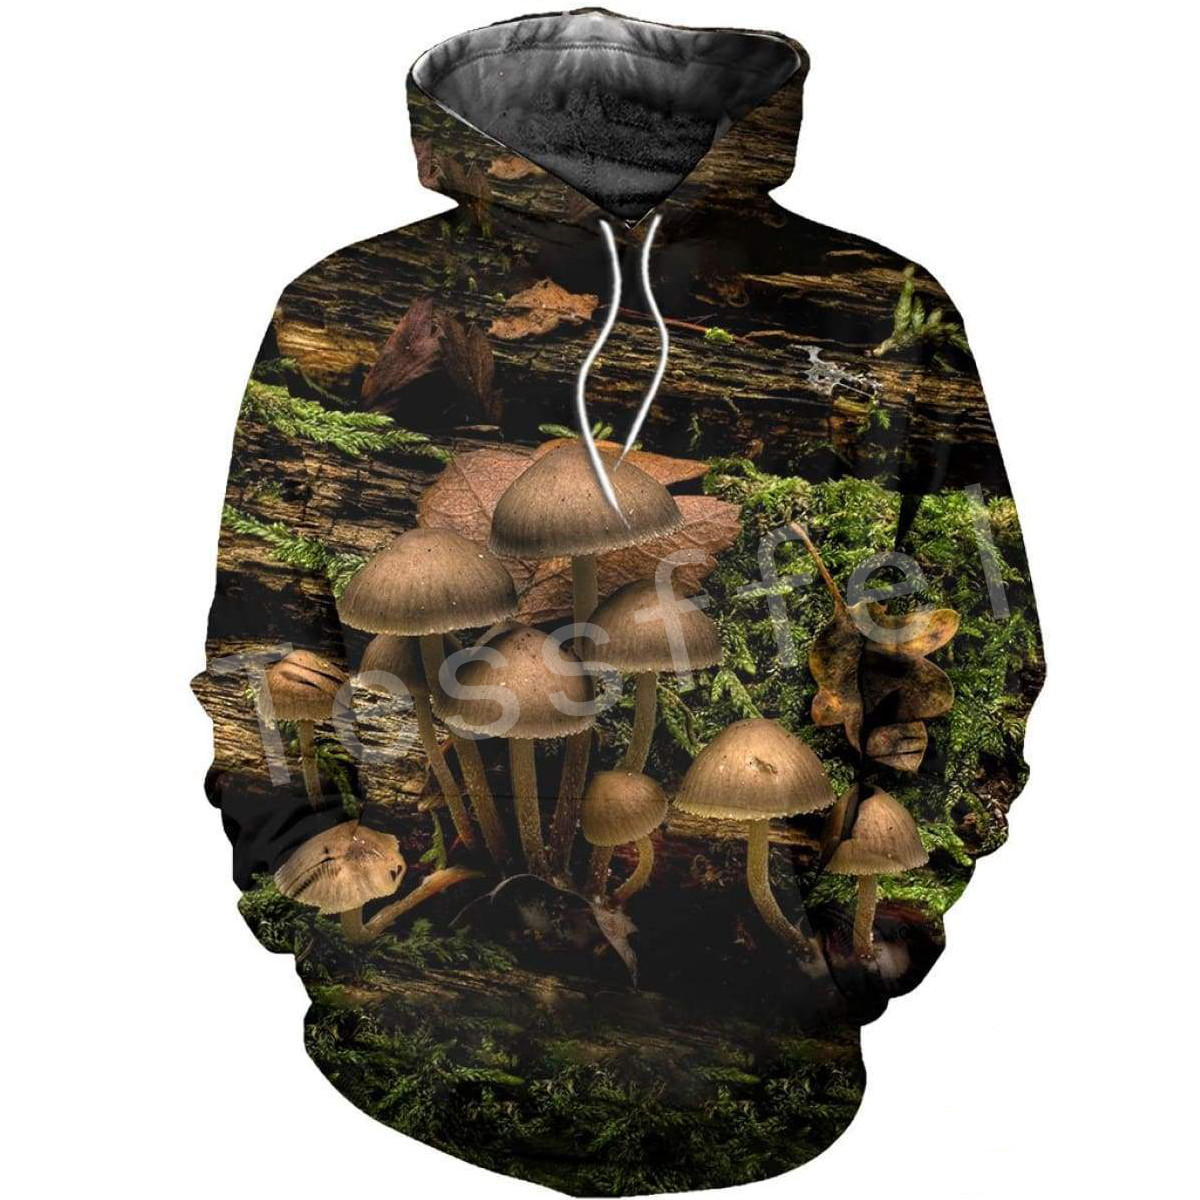 Tessffel Mushroom Colorful Tracksuit Unisex 3DPrint Hoodie/Sweatshirt/Jacket/shirts Mens Womens HIP HOP Cartoon Casual Style-2